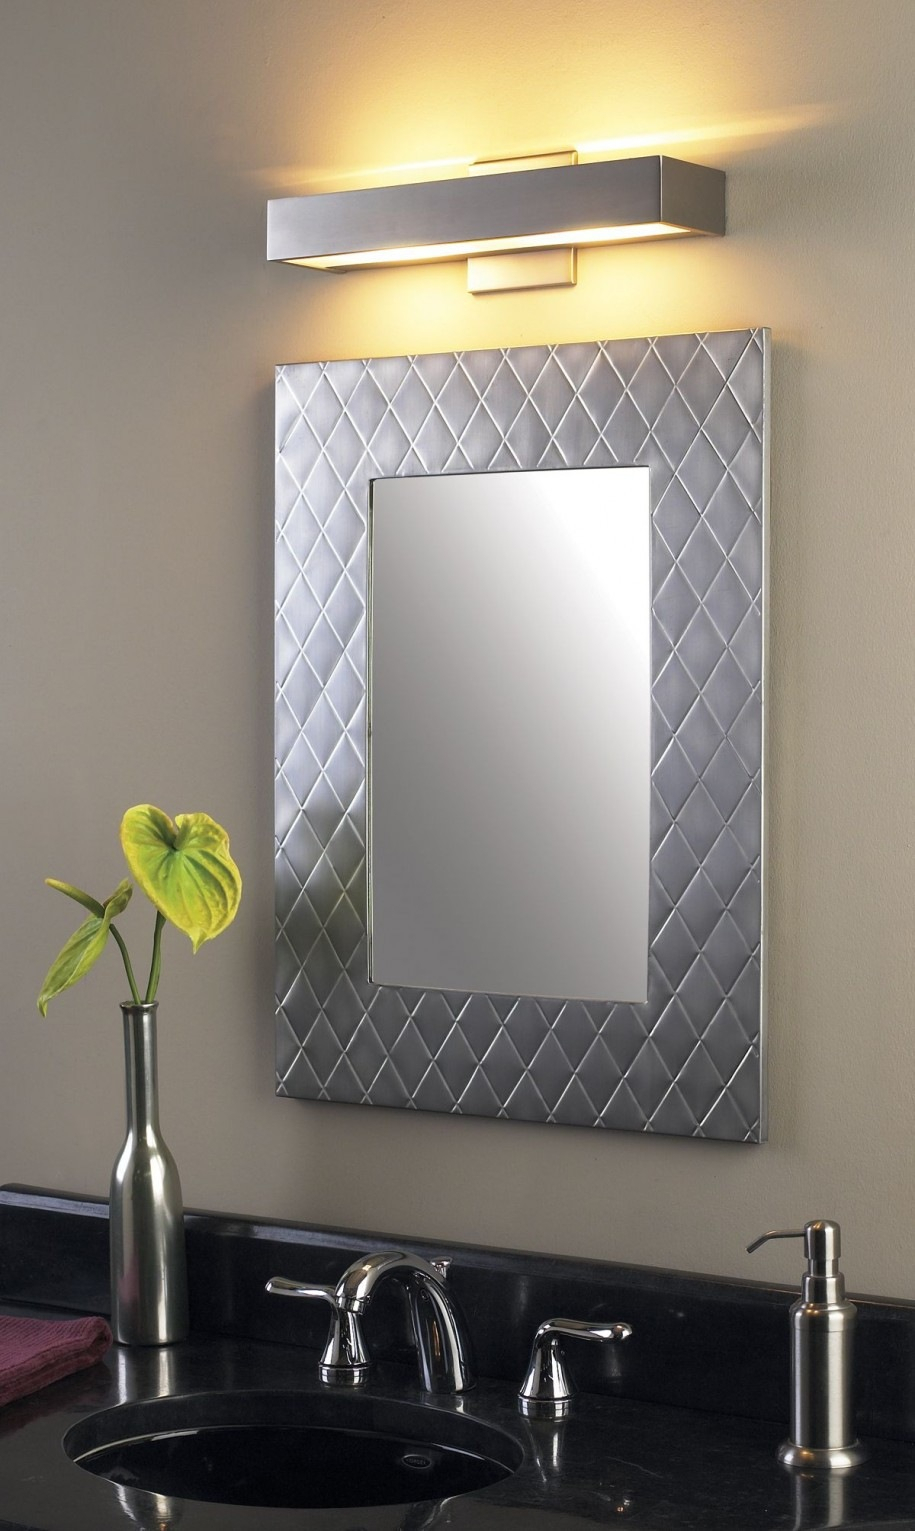 Suddenly Brushed Nickel Wall Mirror Loree Fini #16196 Inside Hogge Modern Brushed Nickel Large Frame Wall Mirrors (View 13 of 20)